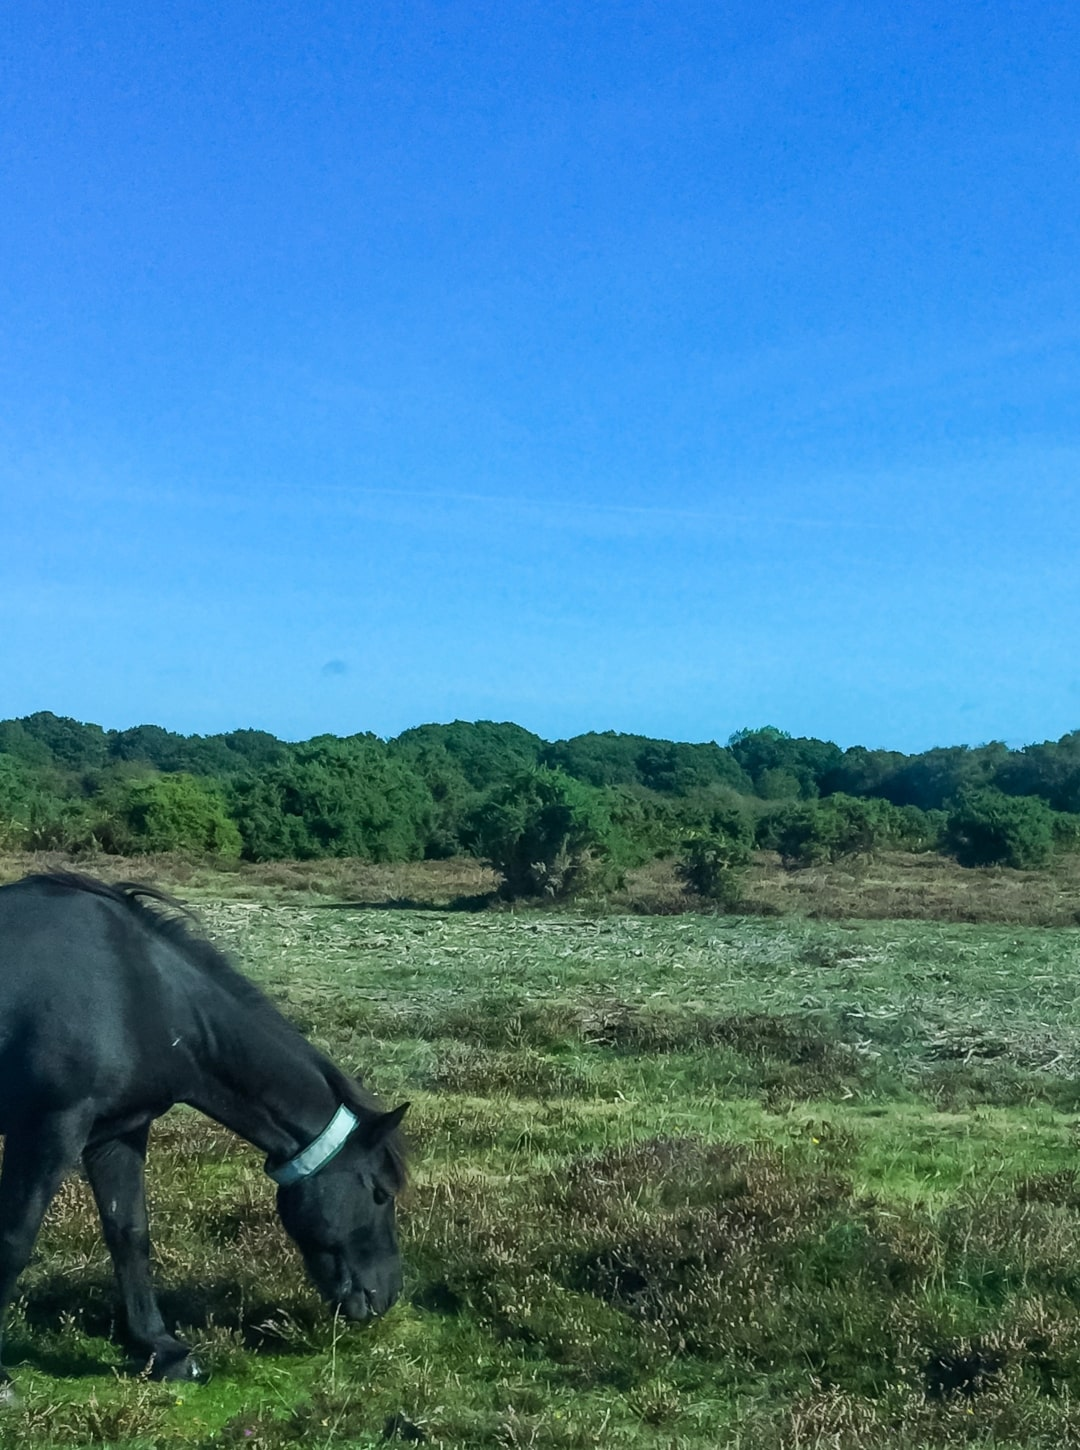 A photograph of a pony in Brockenhurst, the New Forest - Finding Happiness and Chasing Rainbows - September 2018 - Mrs H's favourite things